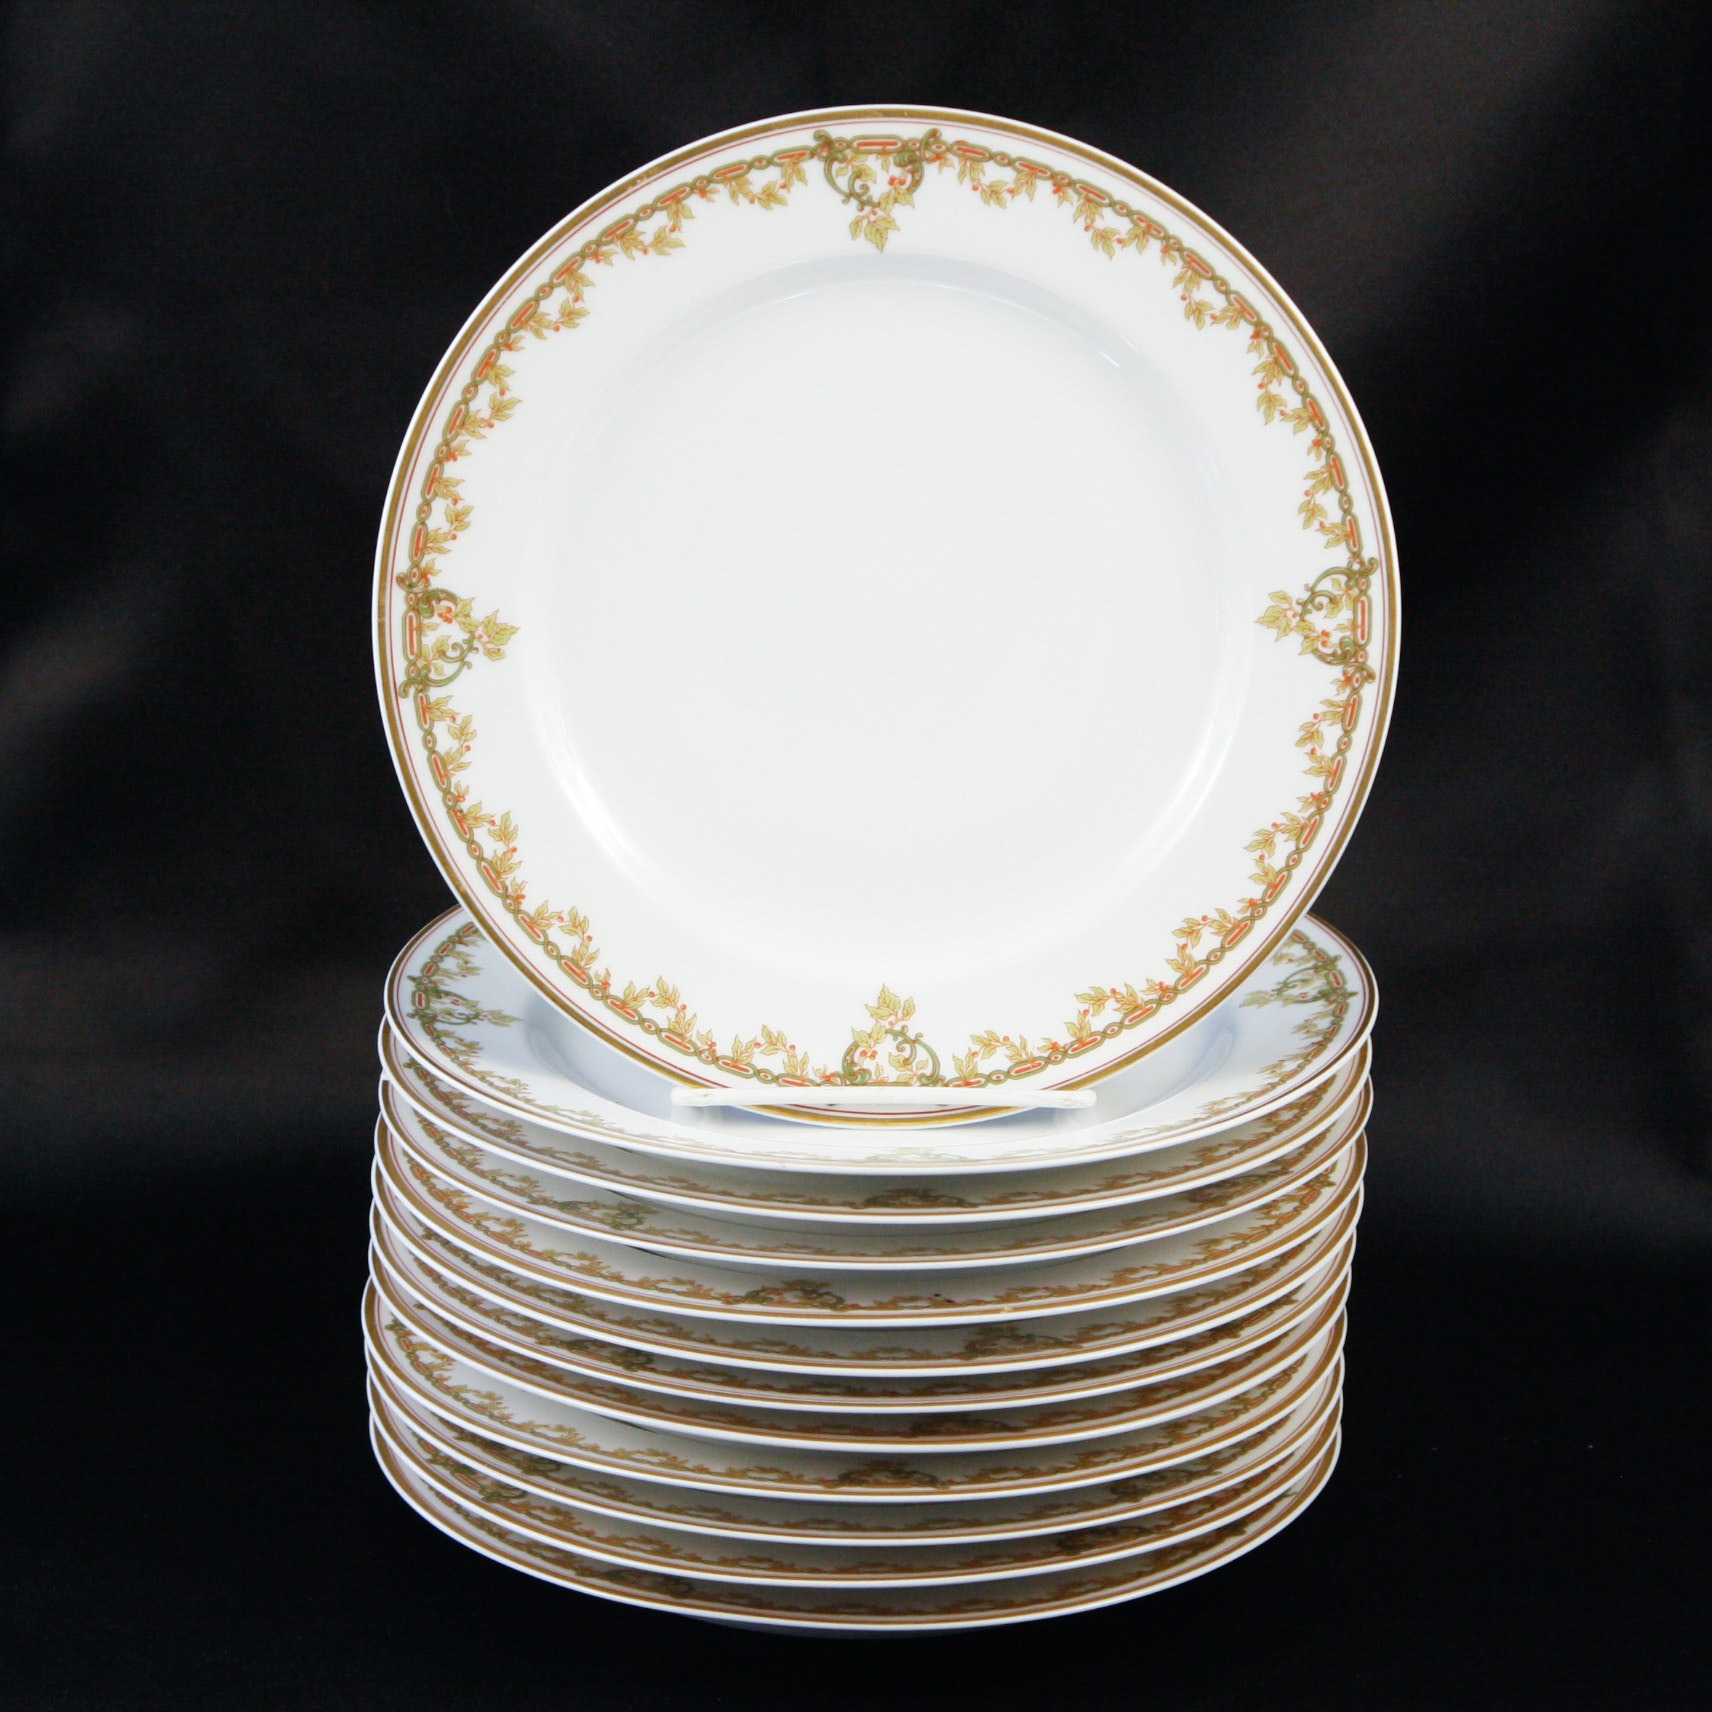 Set of Twelve Haviland & Co. Limoges France Porcelain Dessert Plates